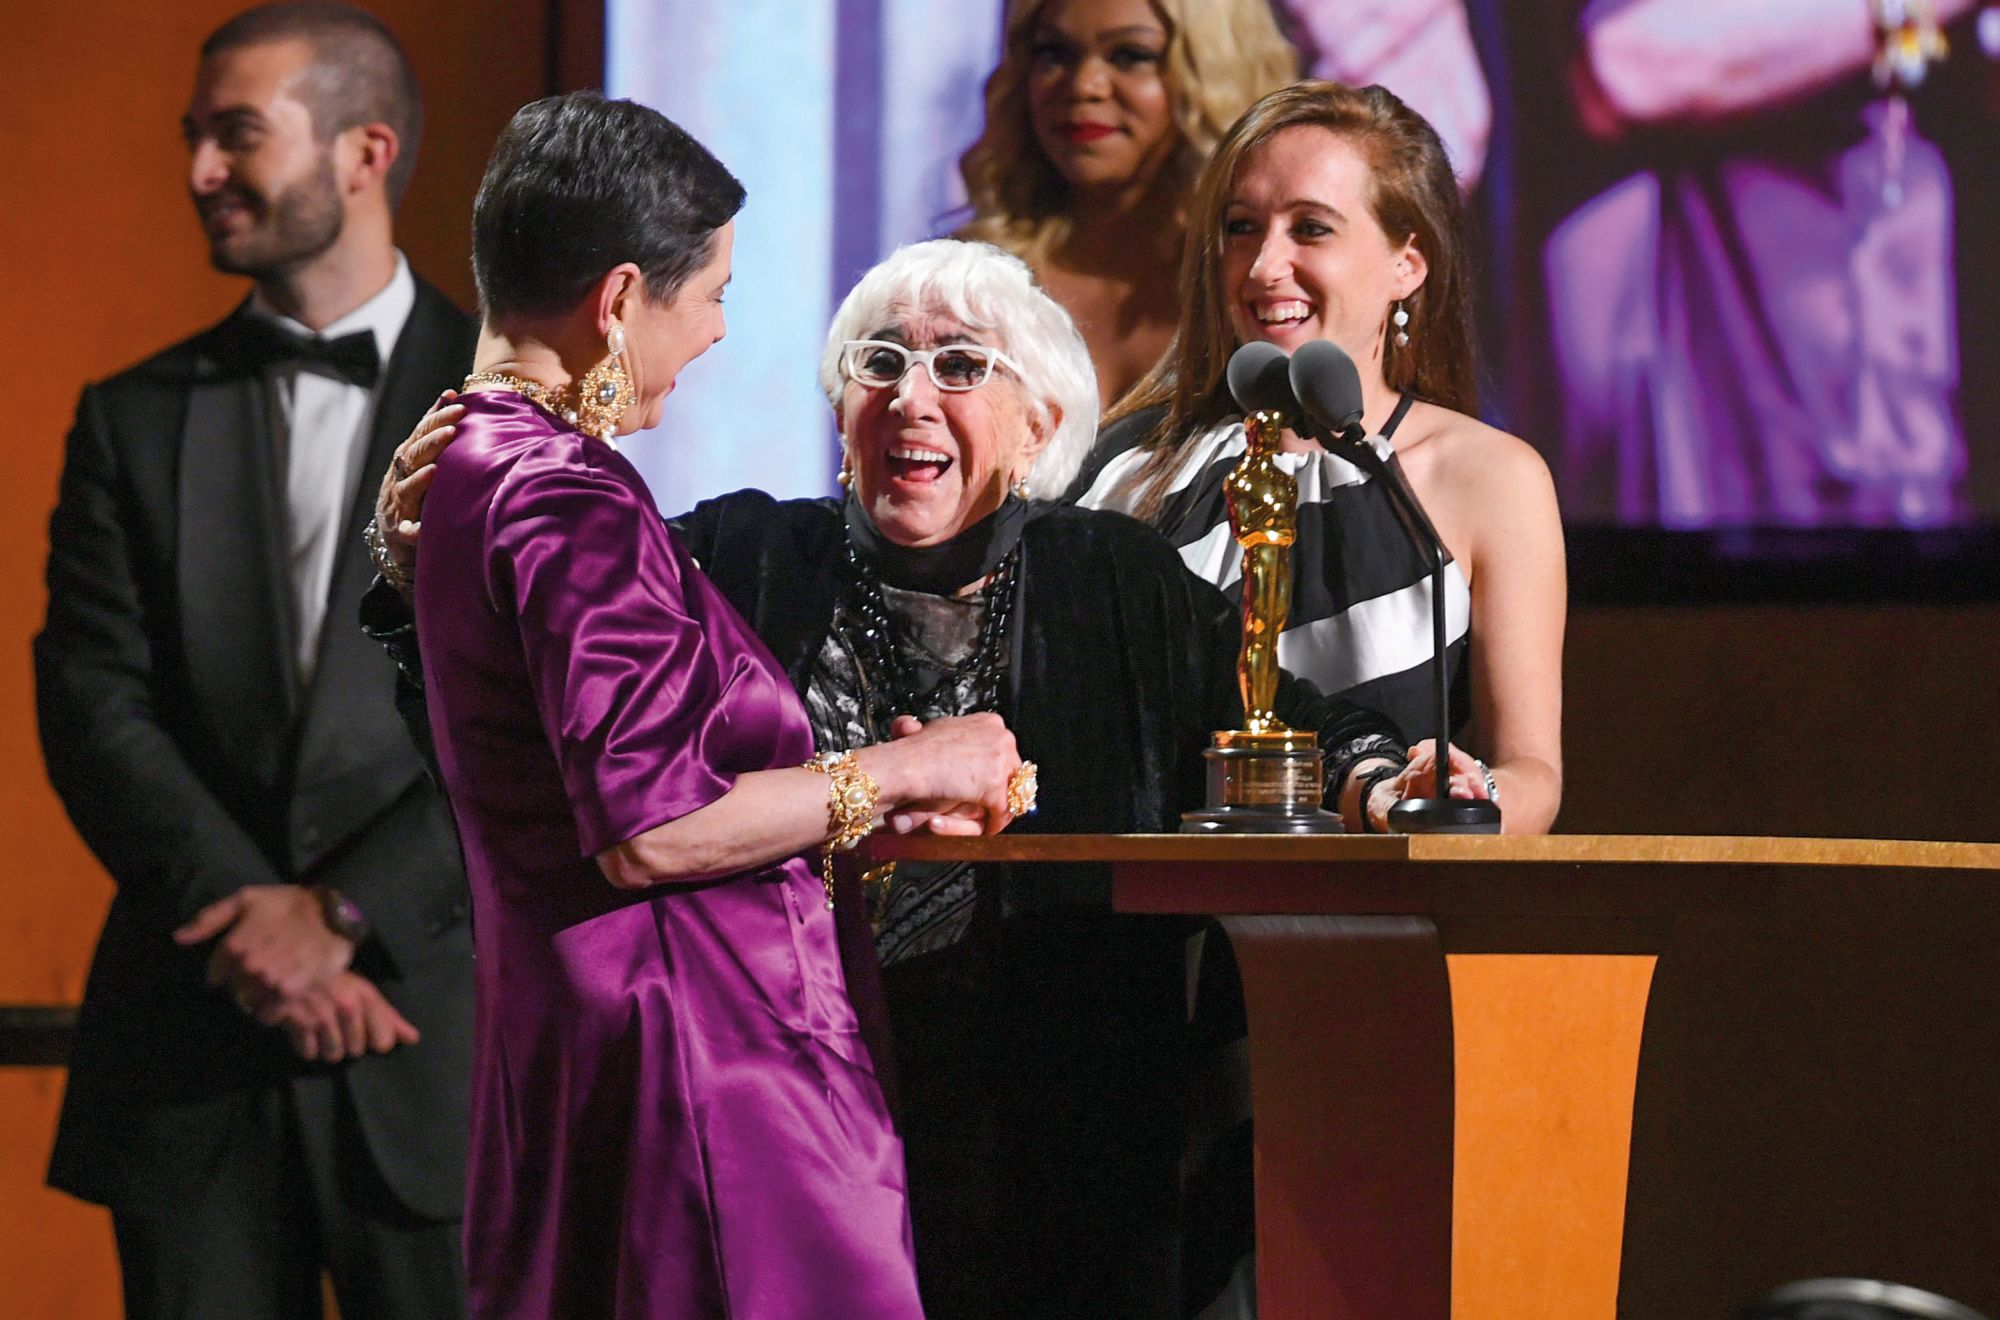 Lina Wertmüller, the 91-year-old Italian director, is awarded an honorary Oscar at the 11th Governors Awards